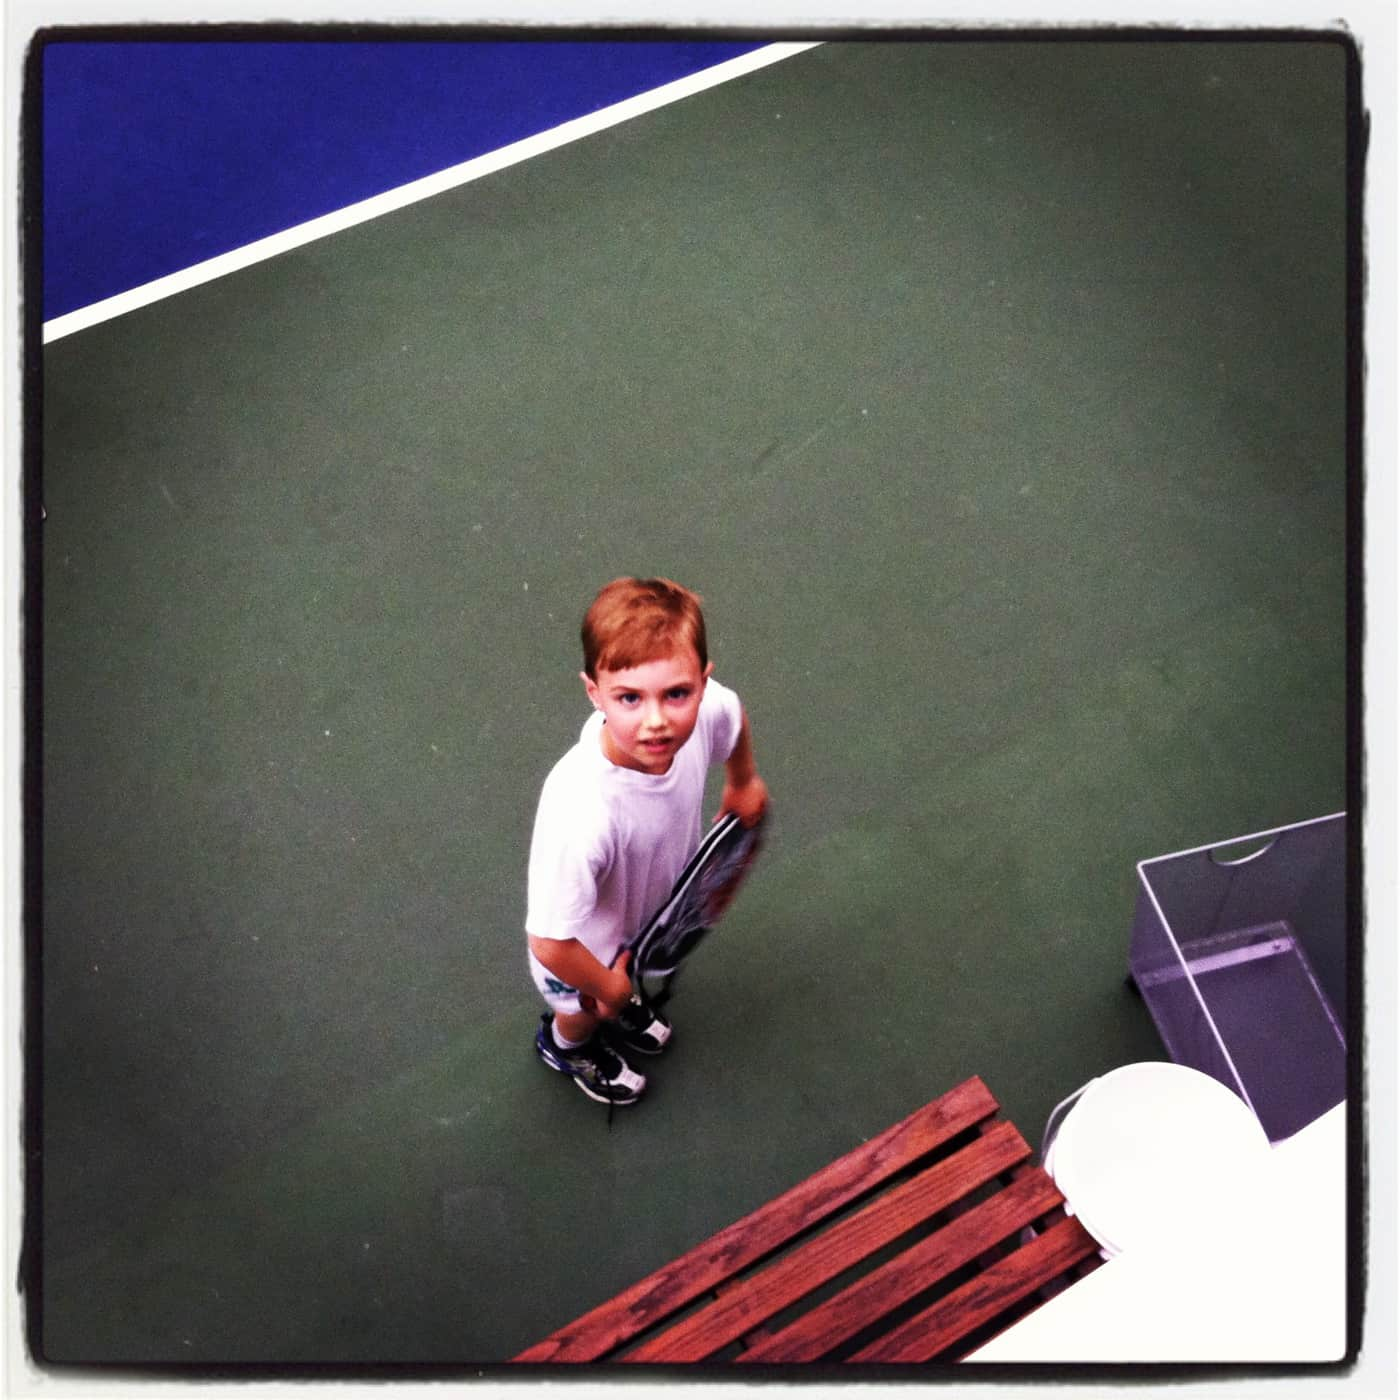 Wordless Wednesday — Tennis Tryout